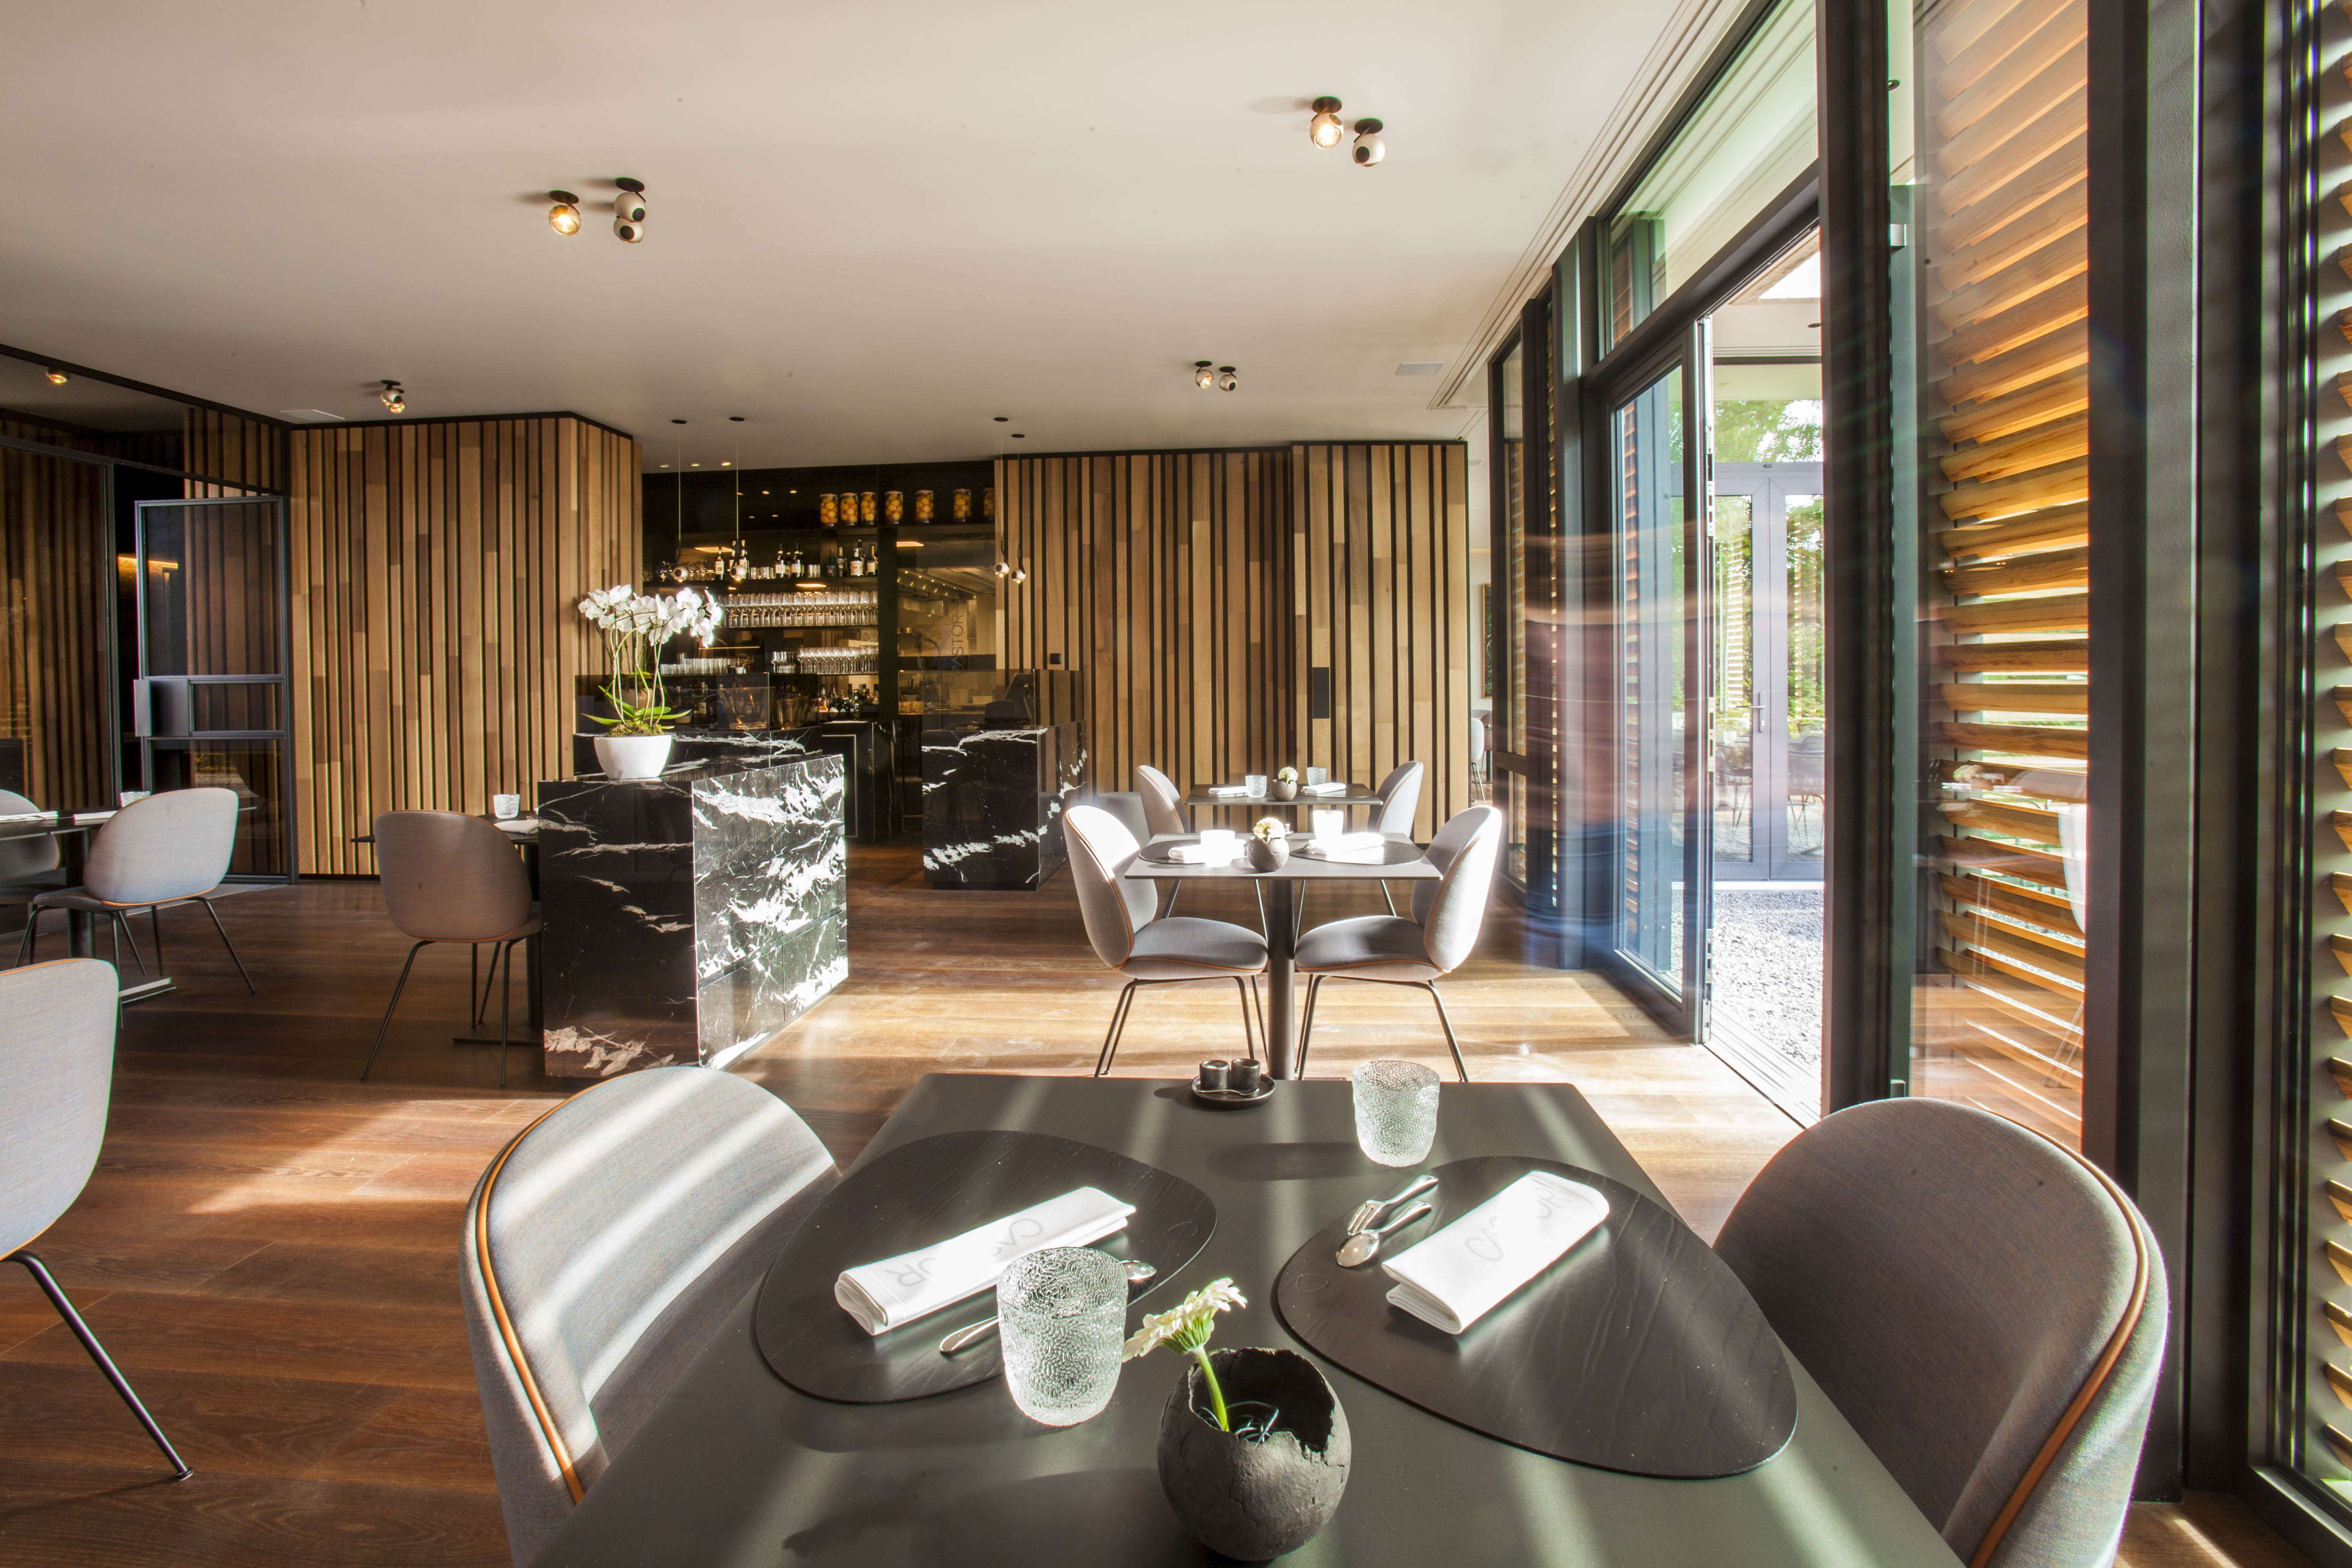 Restaurant Castor - Inoforma Architects